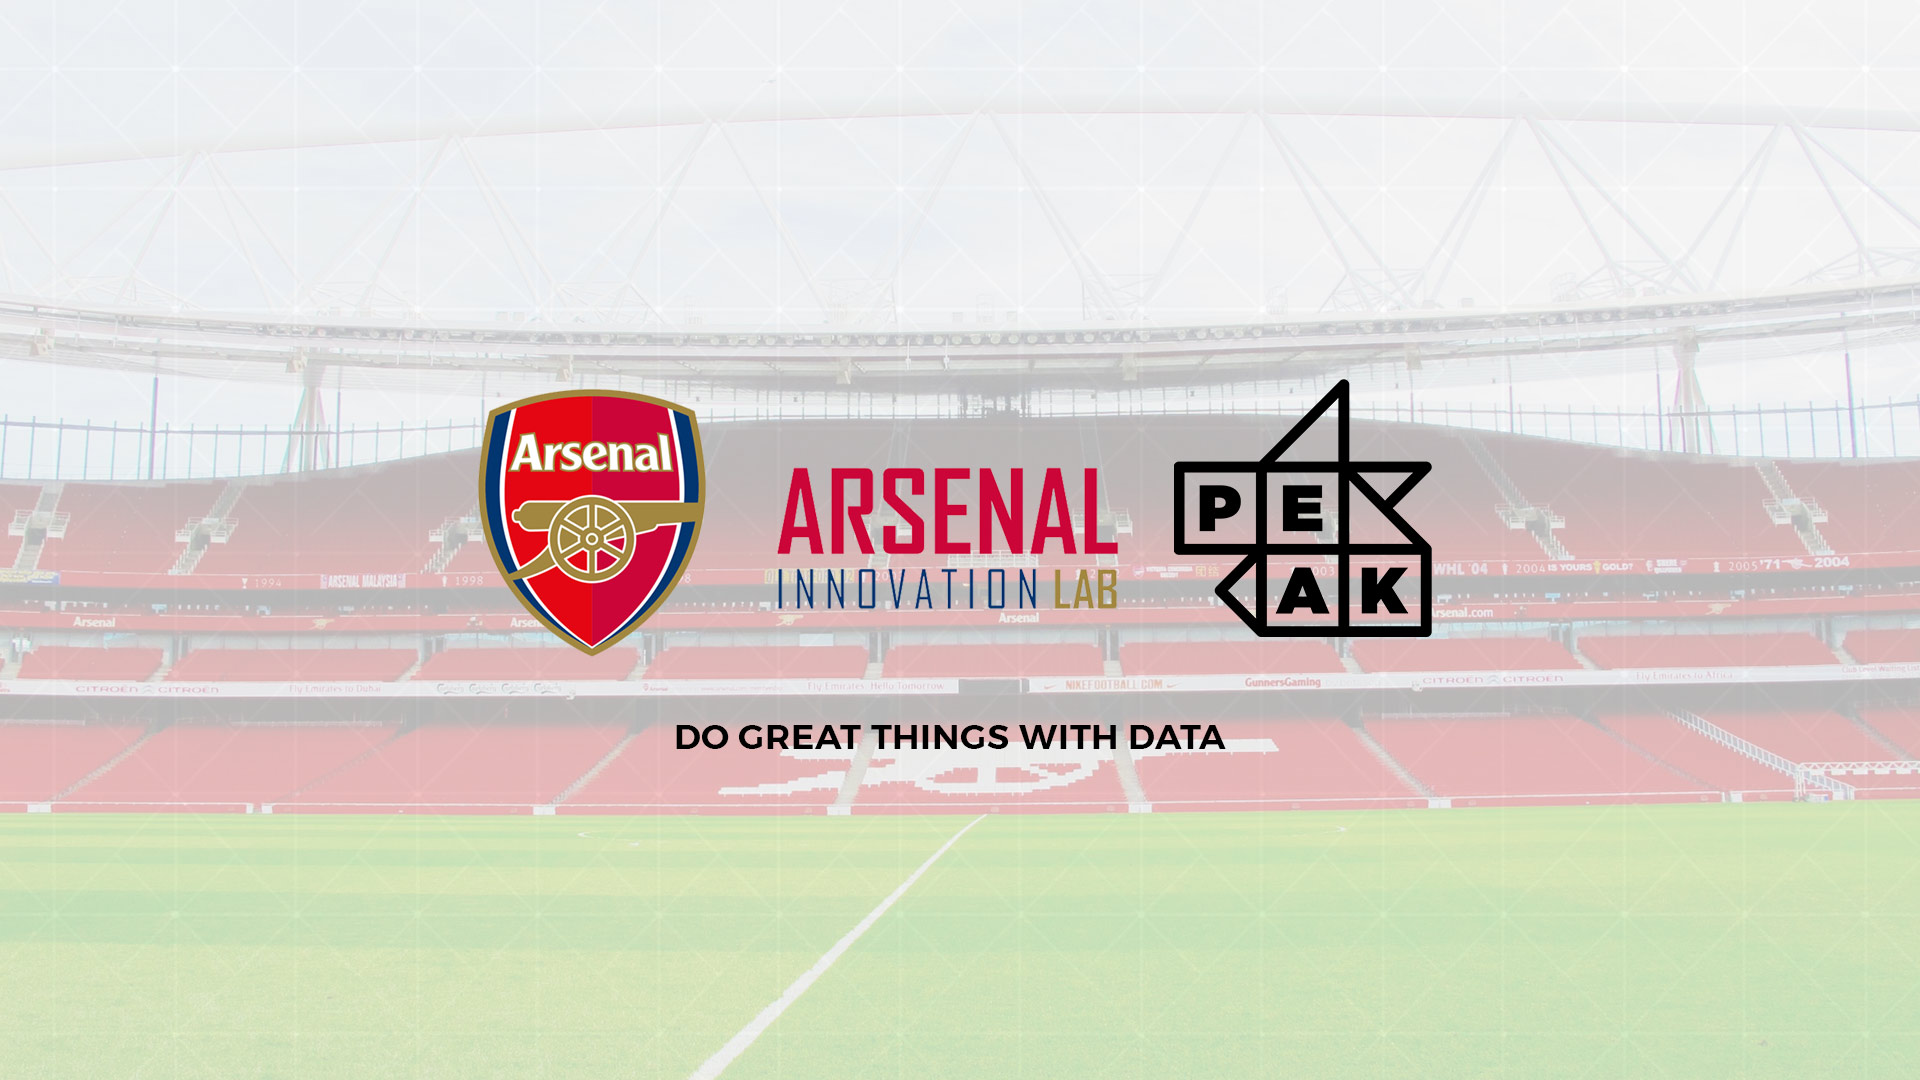 Peak works with Arsenal FC on new programme to drive innovation